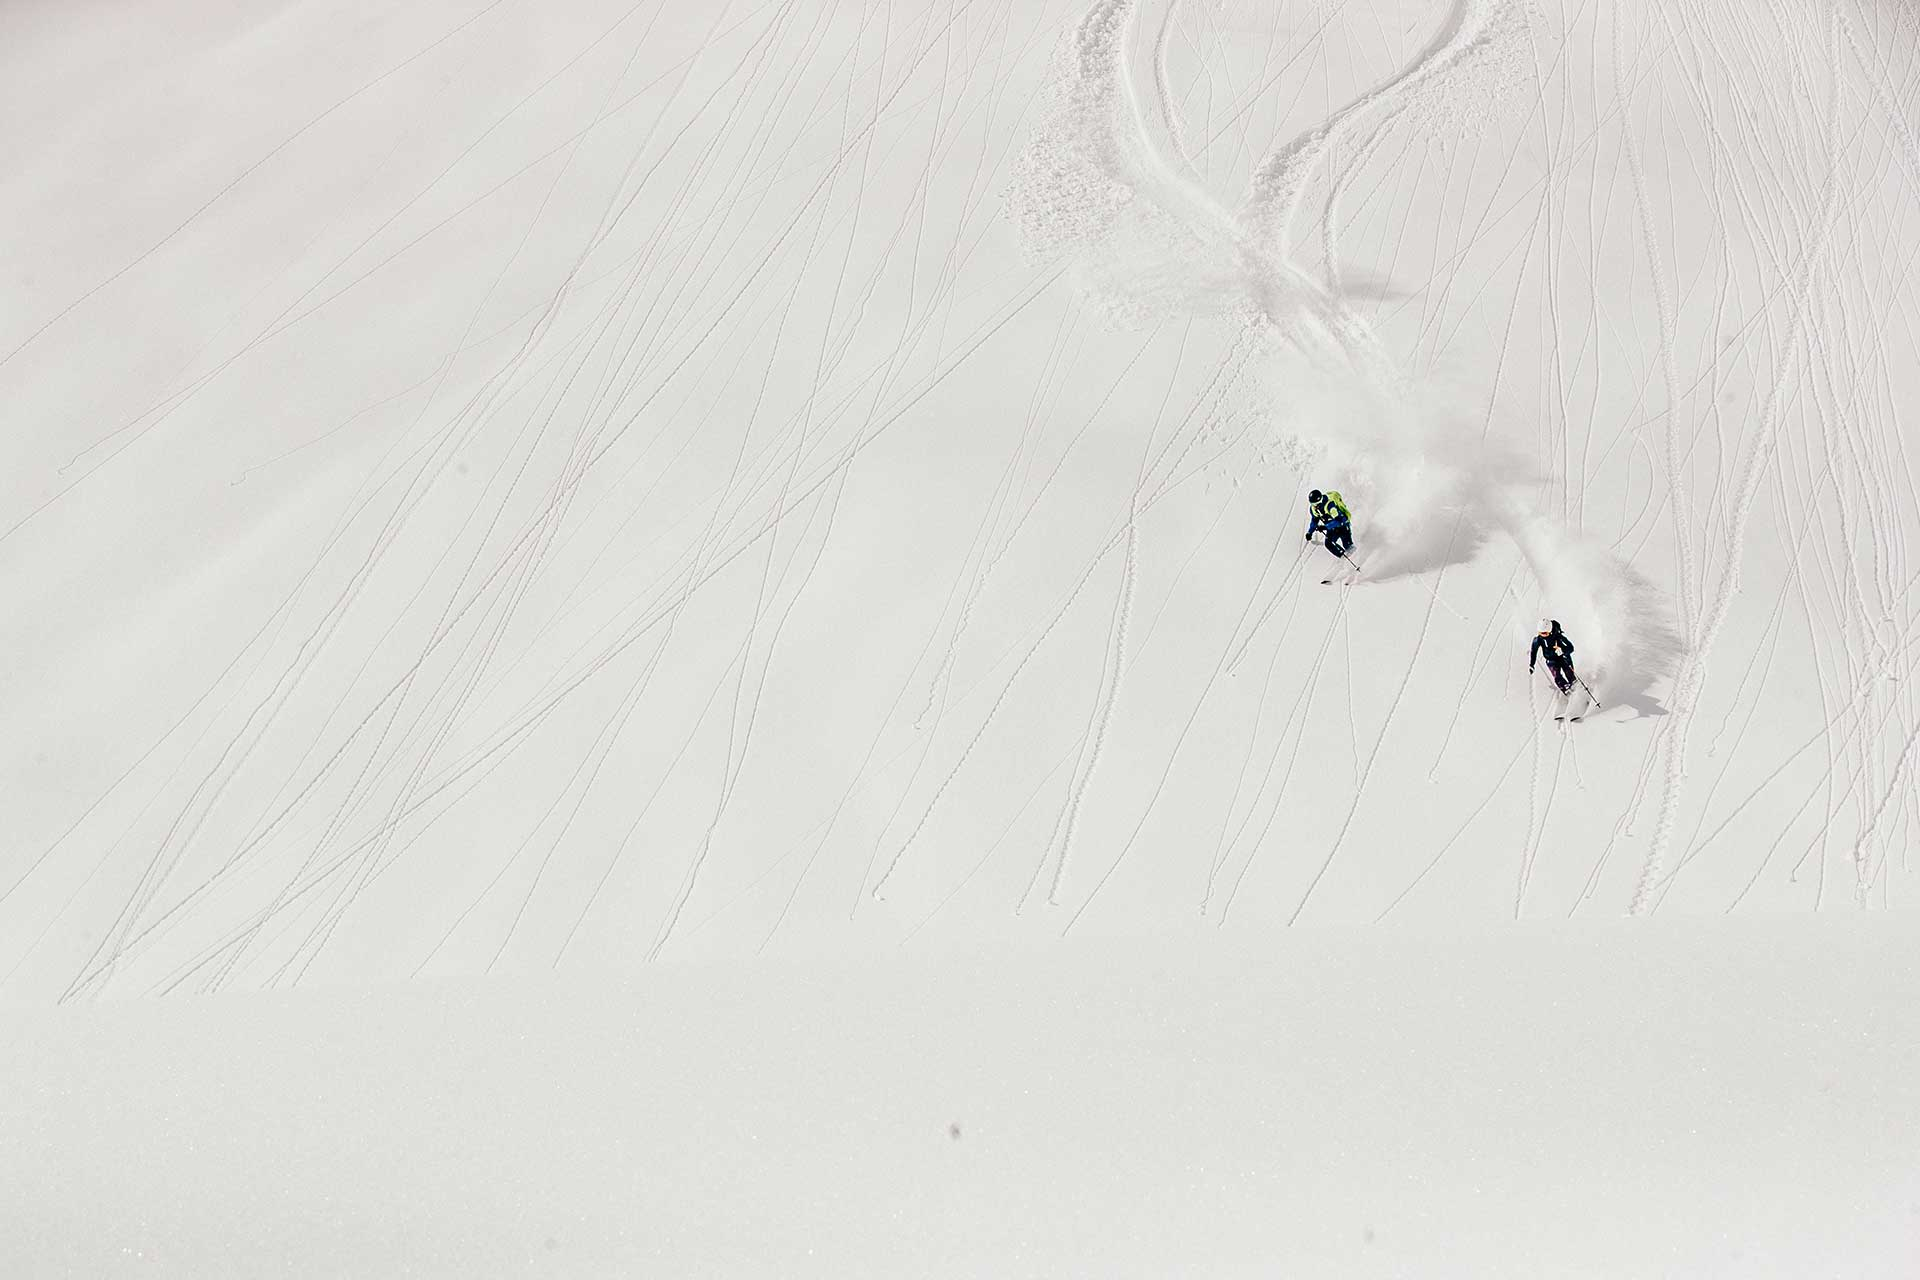 Fotograf Ski Winter Powder Tiefschnee Freeride Aktion New York